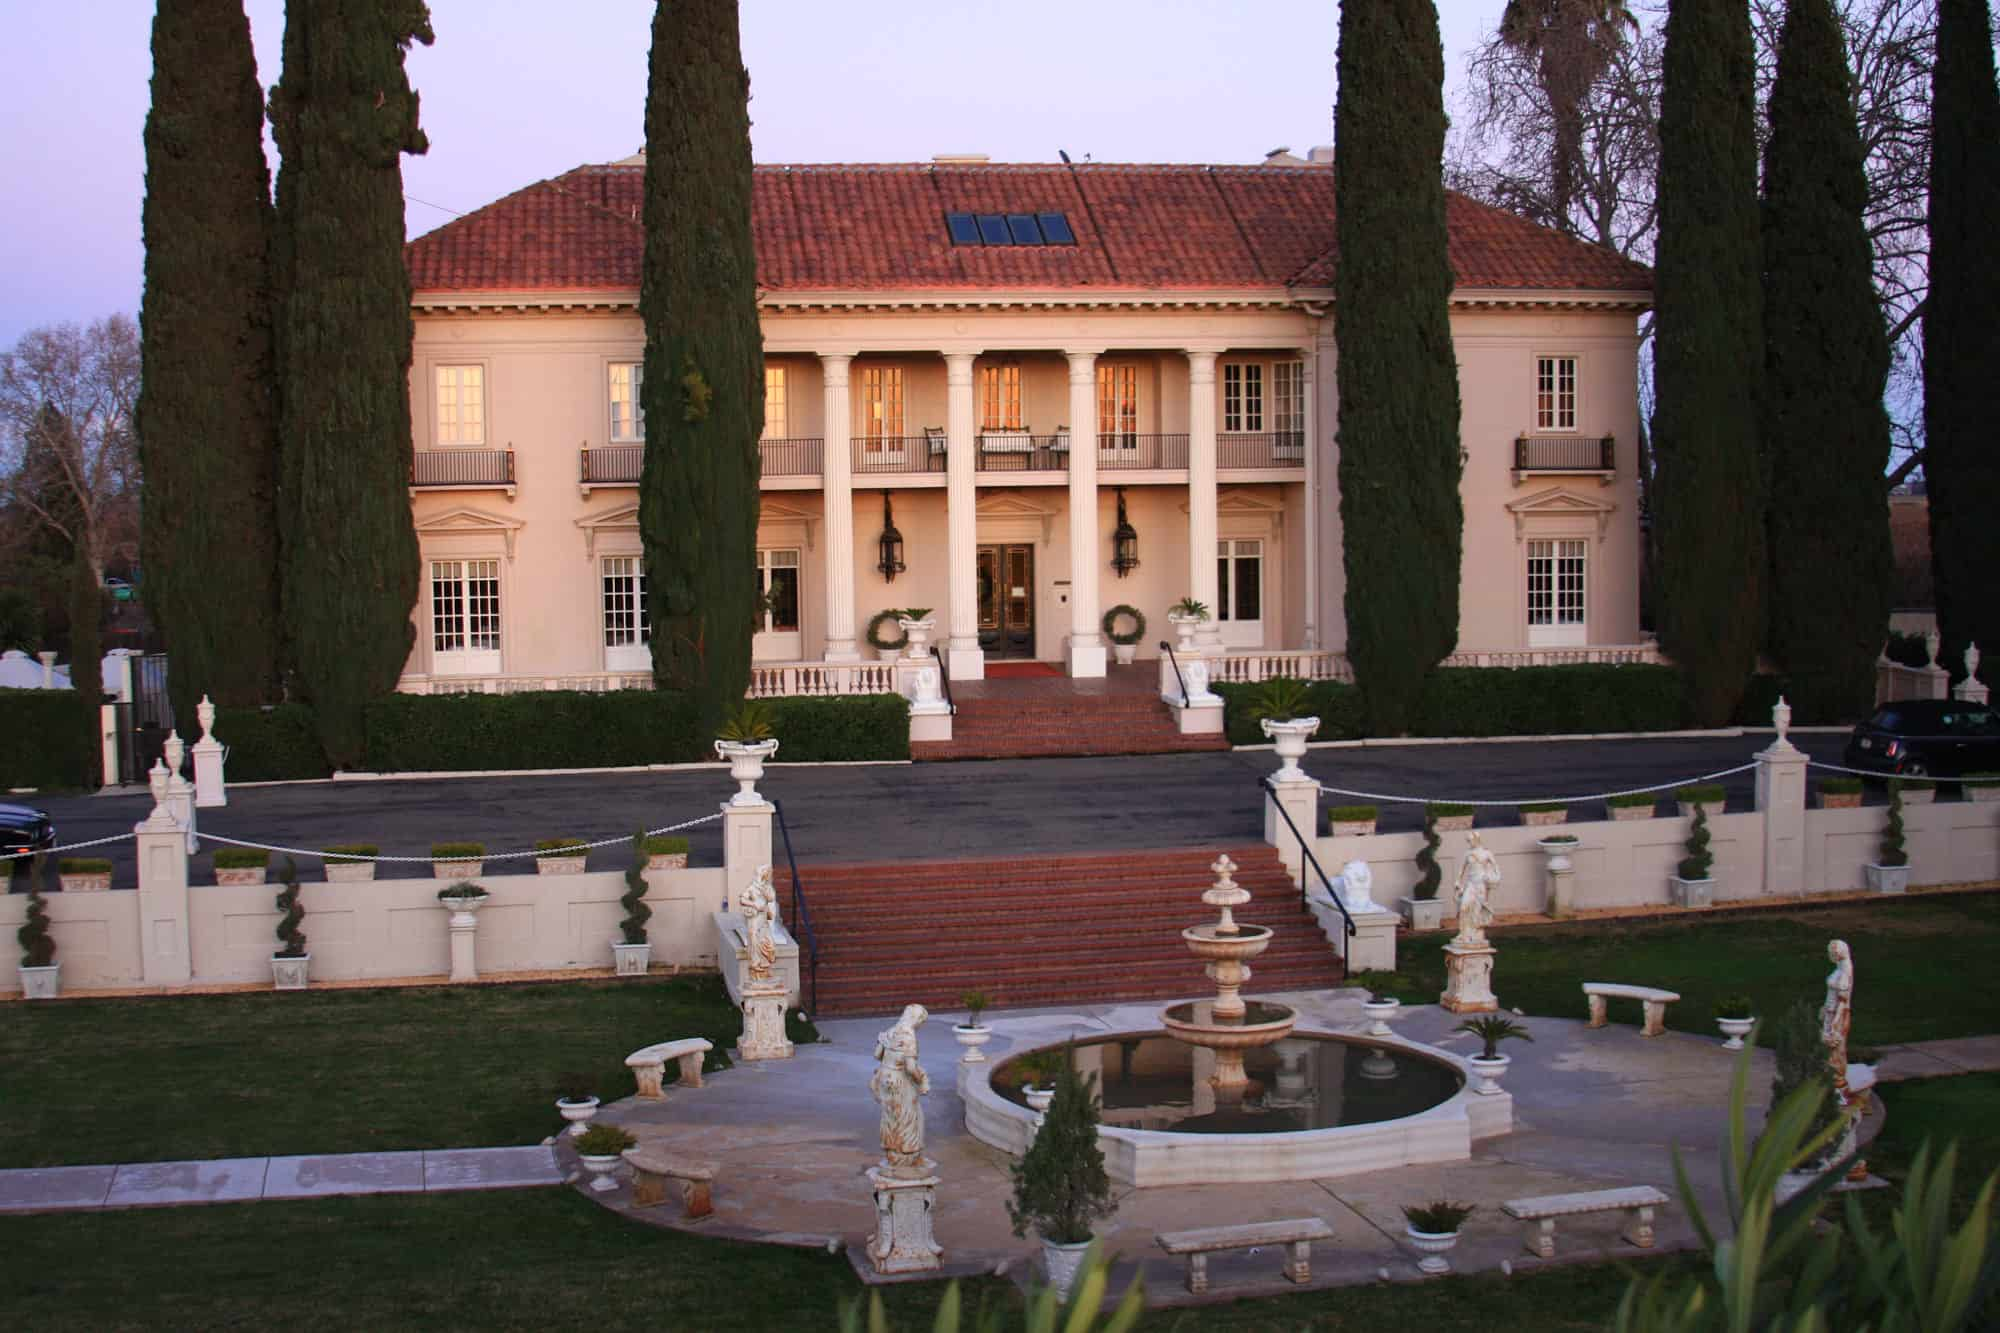 California Mansion and fountain at sunset